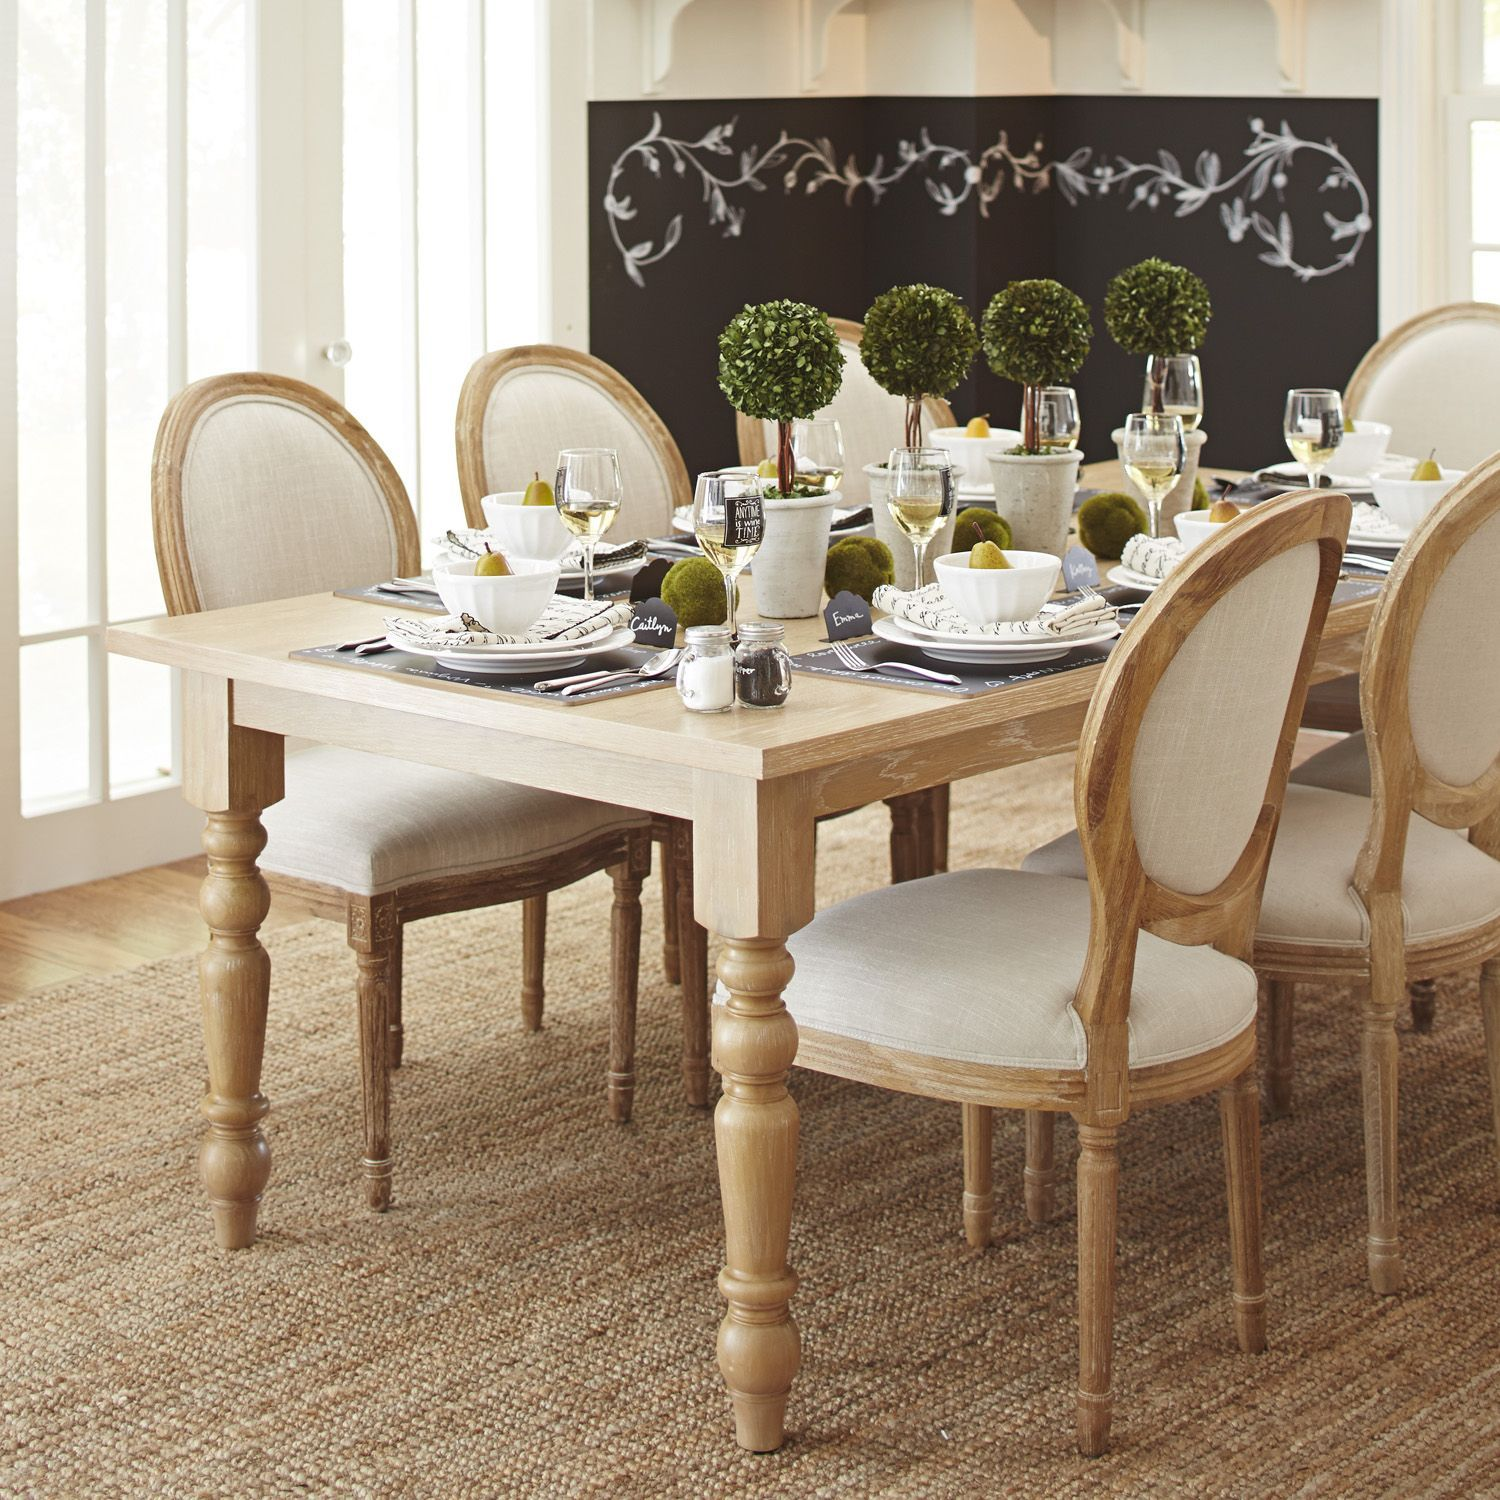 Torrance Natural Whitewash Turned Leg Dining Table Products - Torrance dining table